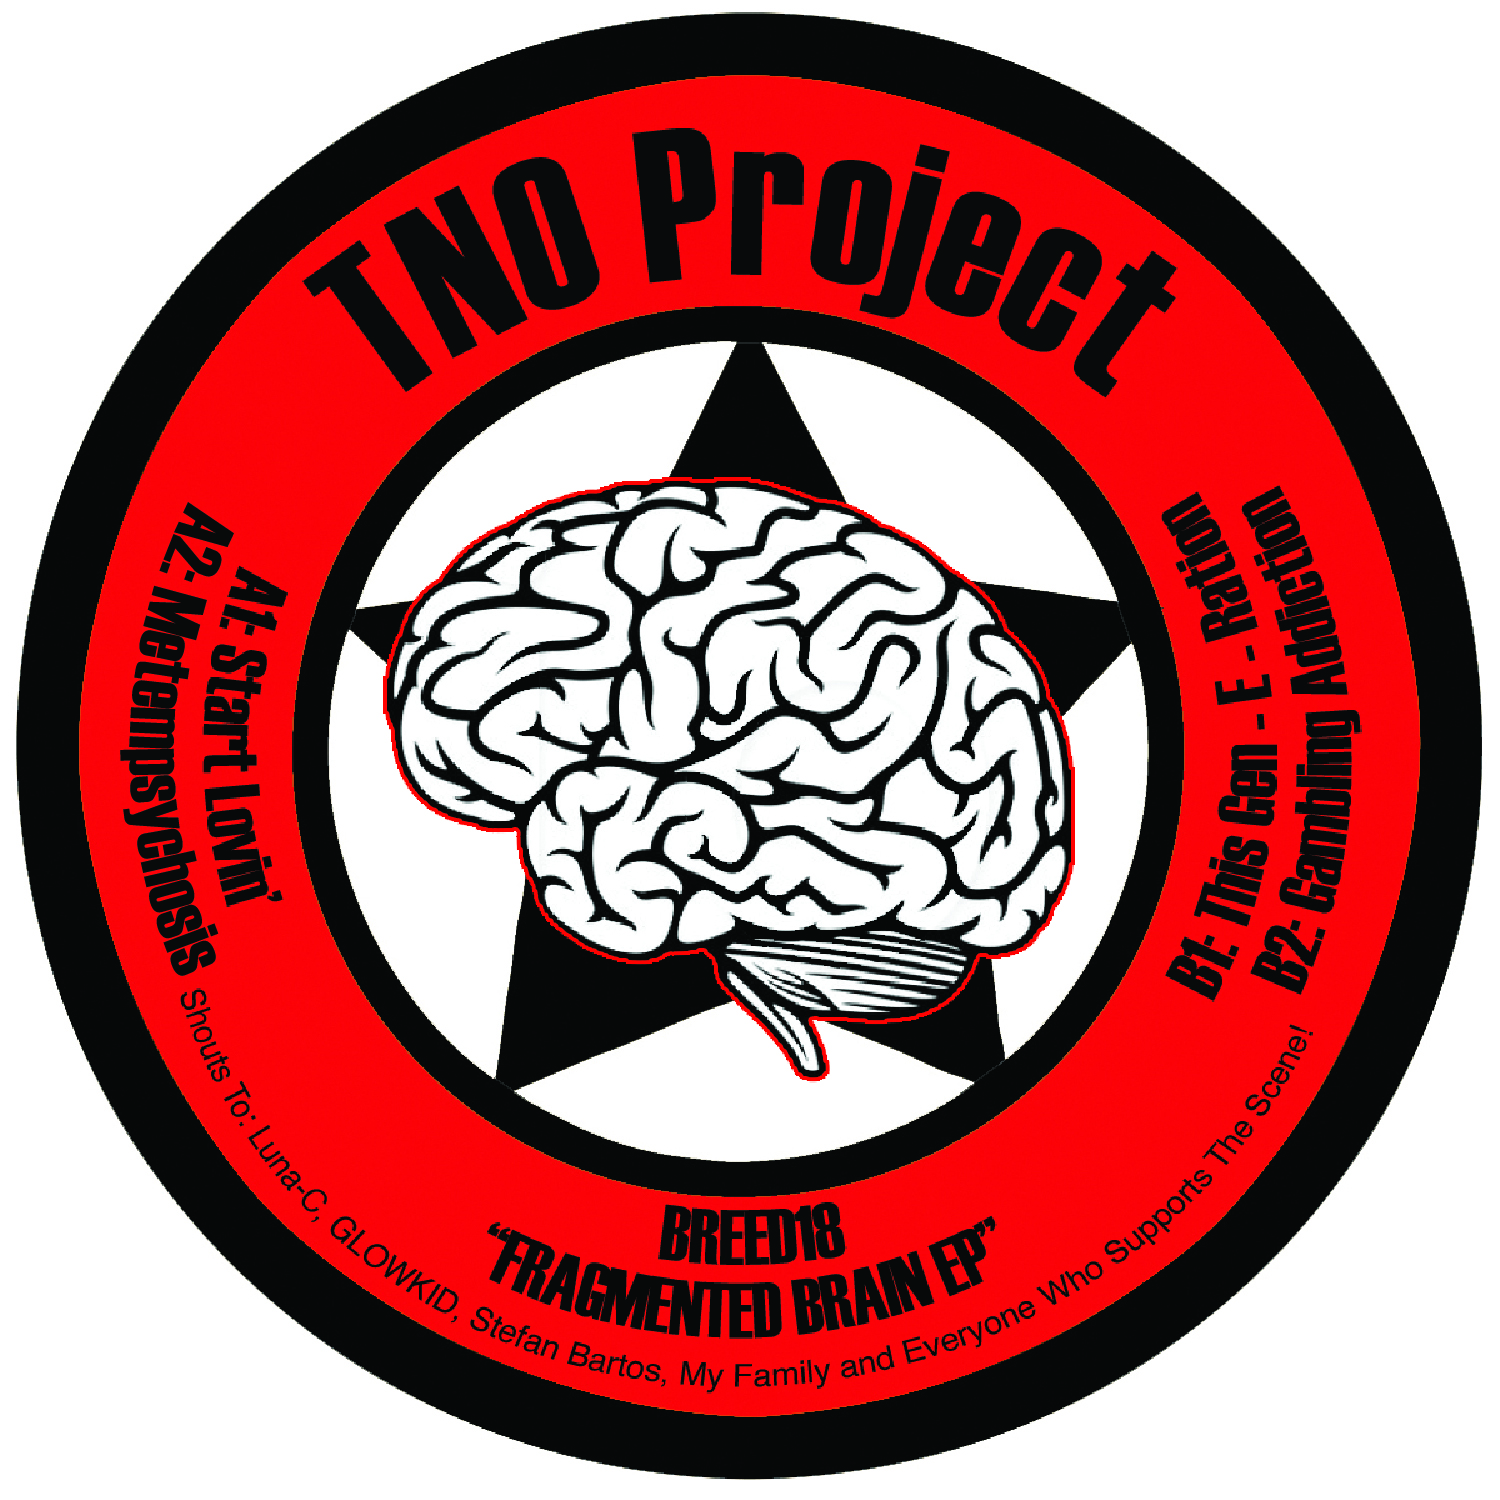 "[BREED018] TNO Project - The Fragemented Brain EP (12"" Vinyl + Digital)"